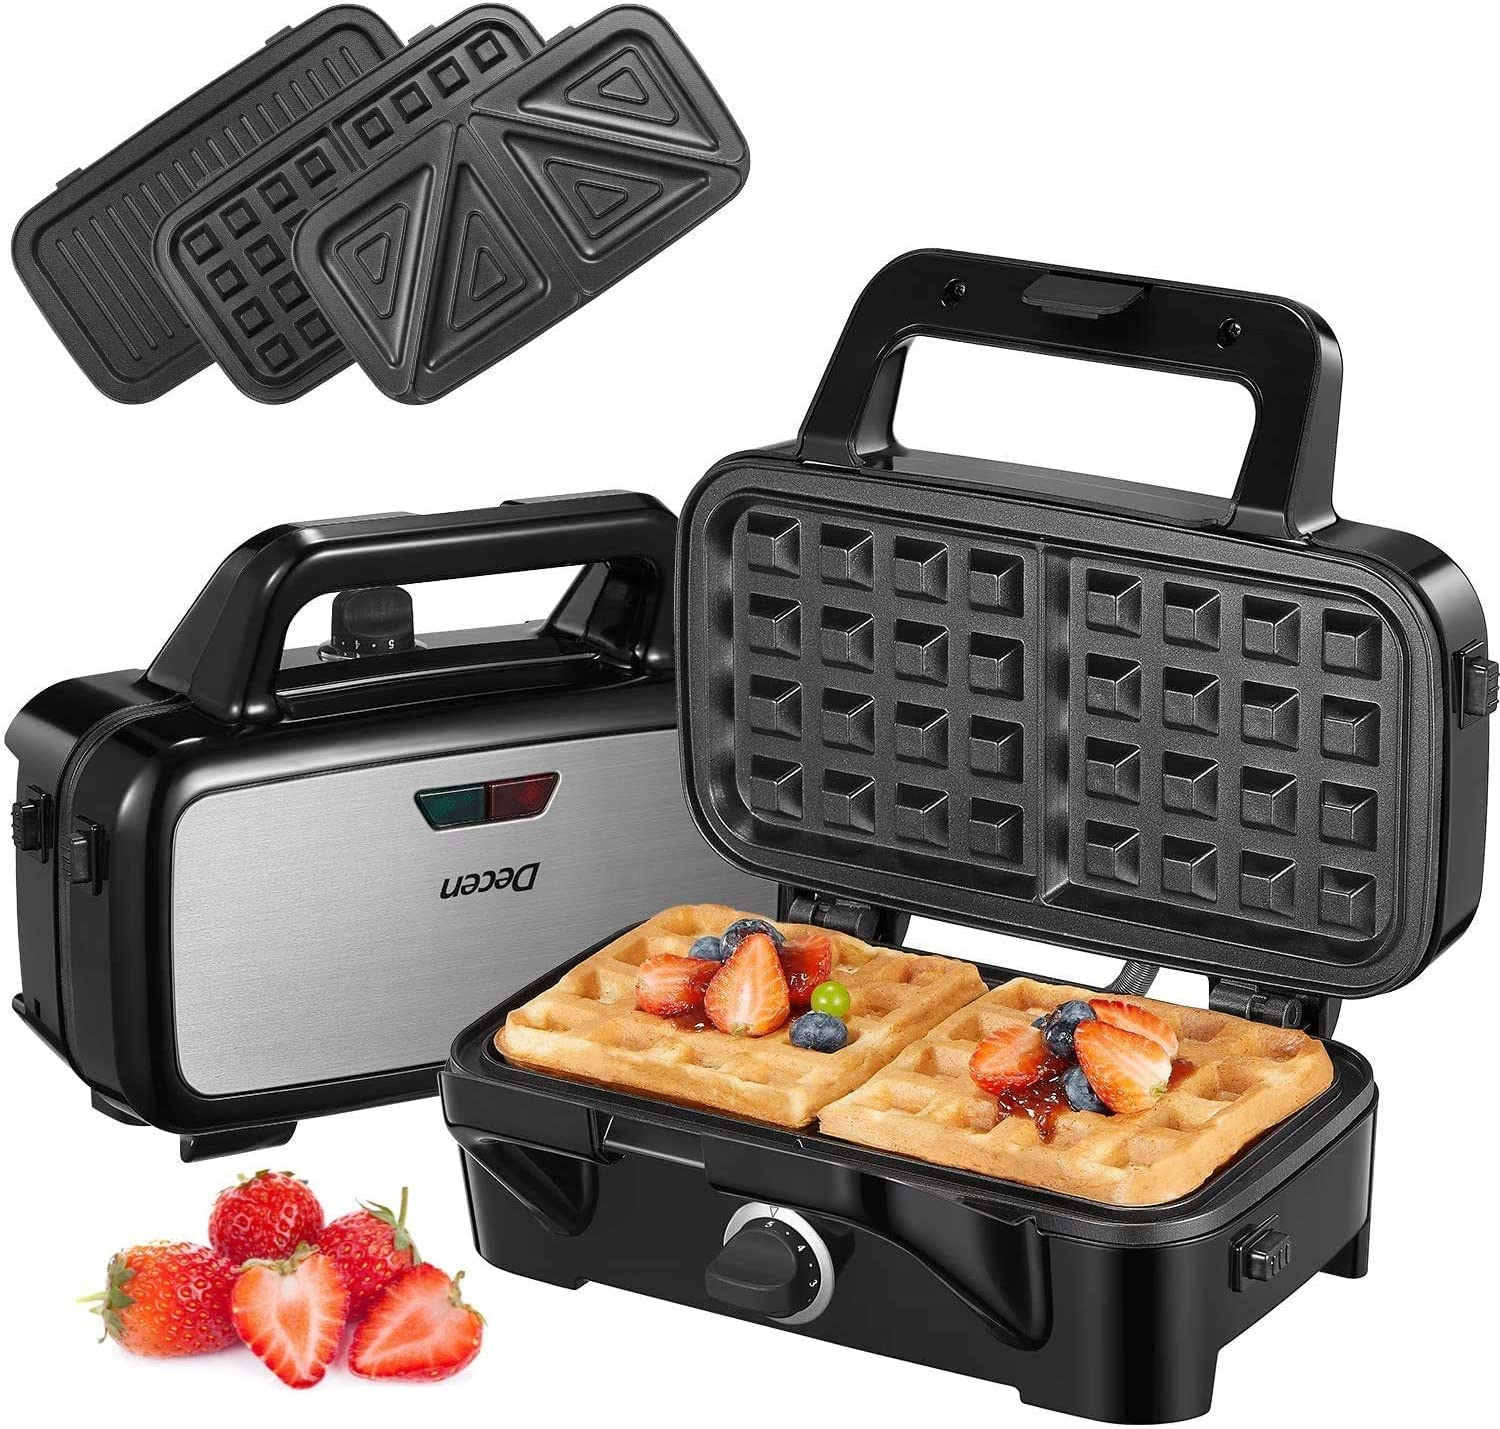 DecenWaffleMaker 3 in 1 SandwichMaker withRemovable Plates, 1200W PaniniPressGrill with 5-gearTemperatureControl, and LEDIndicator,CoolTouchHandle,Silver